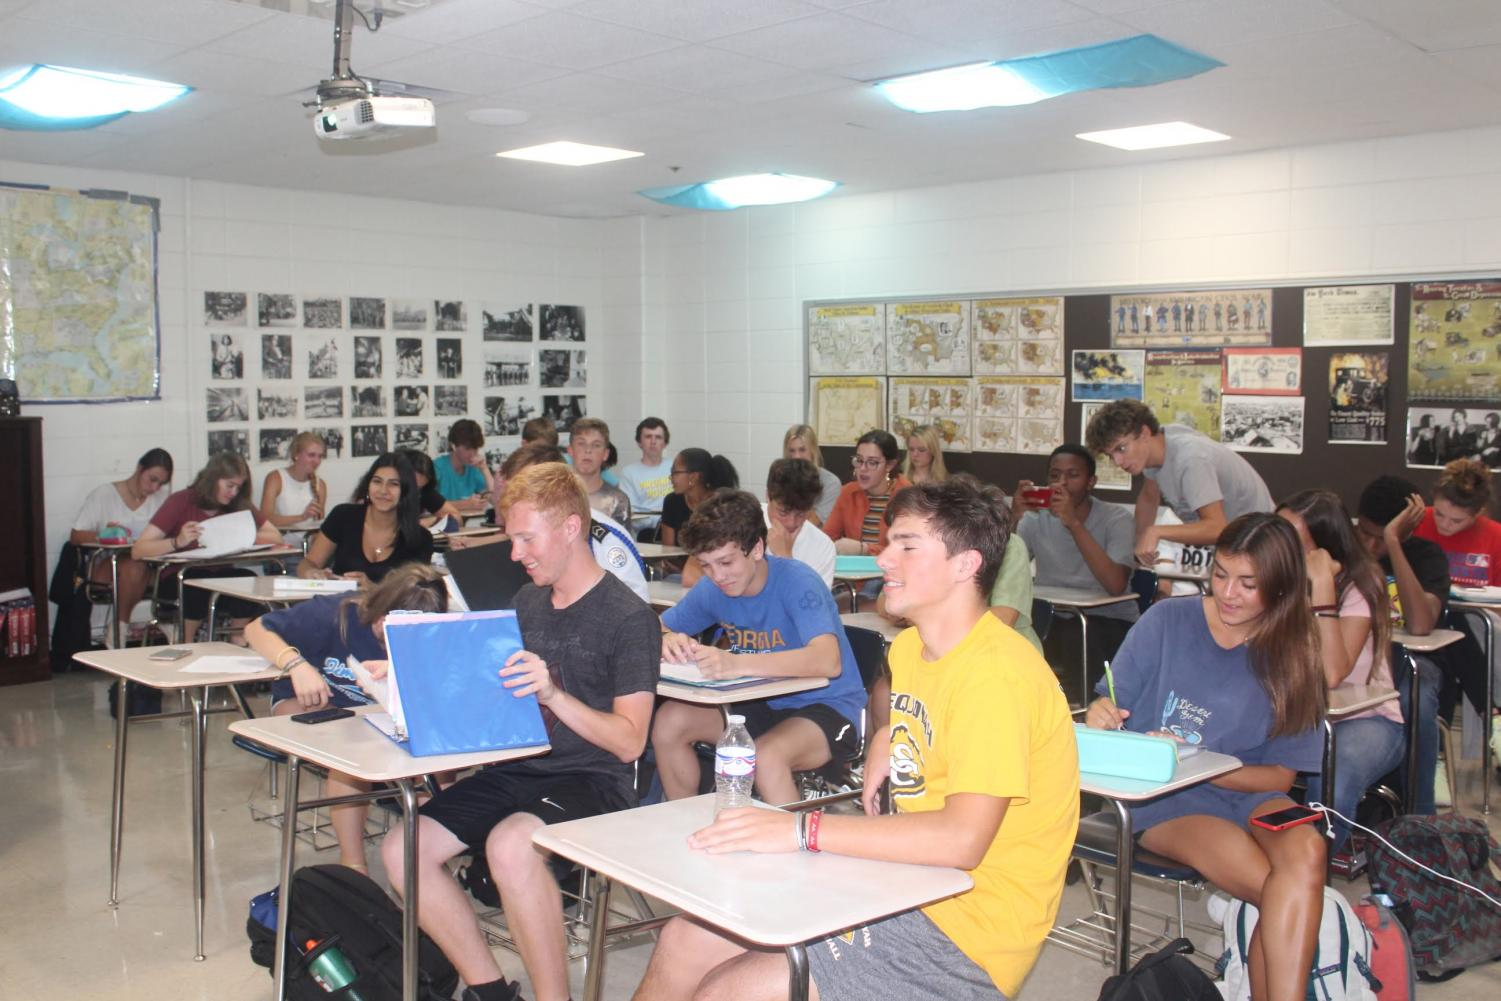 Mr. Andy Maxwell's sixth period US History class listens along during a lecture. Last year Mr. Maxwell's largest class had fewer than 30 students, but this year almost all his classes have over 30 students. Photo by Emily Hill